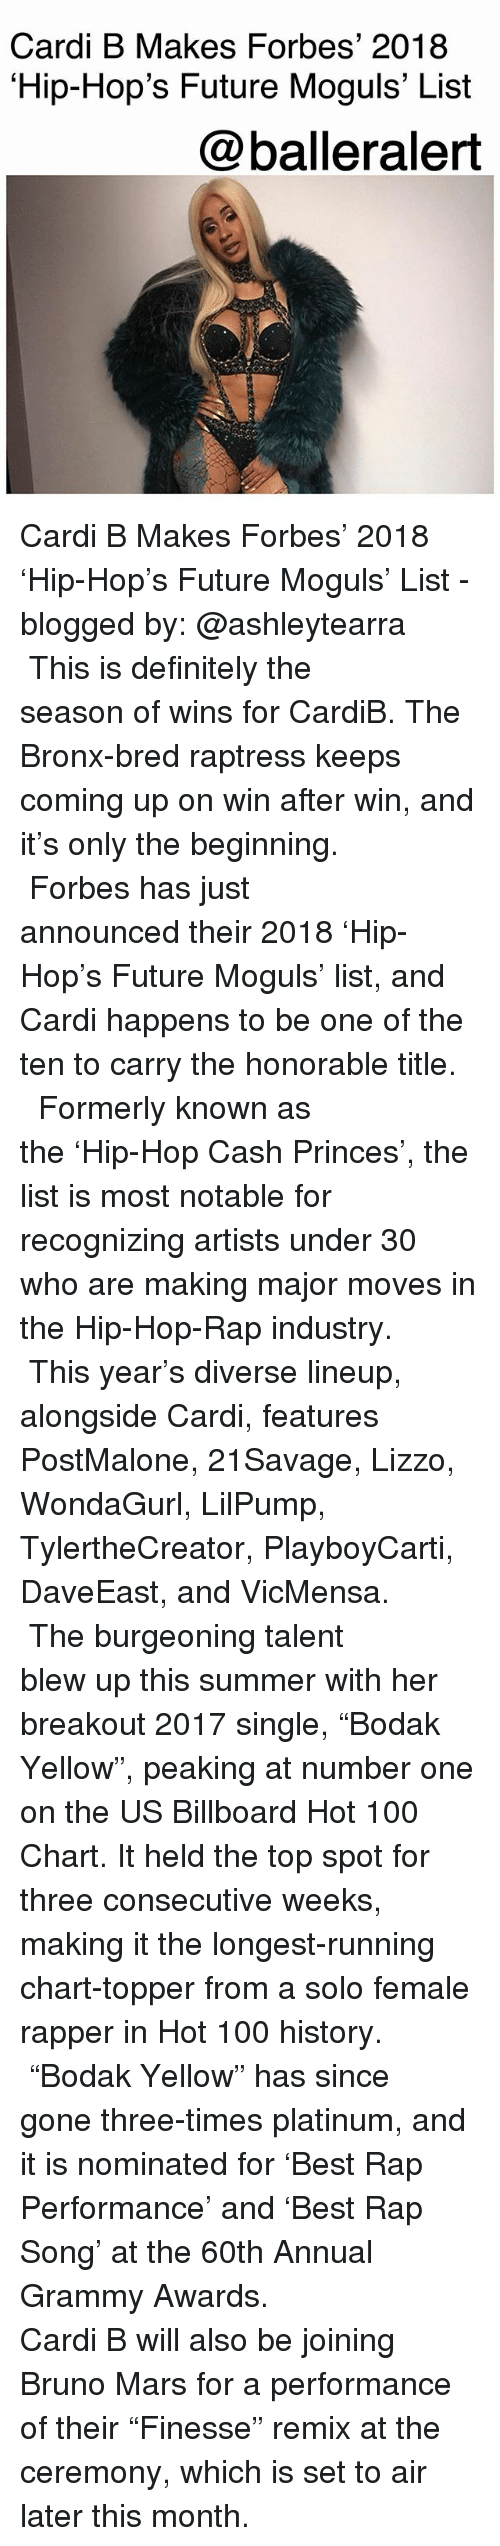 """Anaconda, Billboard, and Bruno Mars: Cardi B Makes Forbes' 2018  Hip-Hop's Future Moguls' List  @balleralert Cardi B Makes Forbes' 2018 'Hip-Hop's Future Moguls' List - blogged by: @ashleytearra ⠀⠀⠀⠀⠀⠀⠀ ⠀⠀⠀⠀⠀⠀⠀ This is definitely the season of wins for CardiB. The Bronx-bred raptress keeps coming up on win after win, and it's only the beginning. ⠀⠀⠀⠀⠀⠀⠀ ⠀⠀⠀⠀⠀⠀⠀ Forbes has just announced their 2018 'Hip-Hop's Future Moguls' list, and Cardi happens to be one of the ten to carry the honorable title. ⠀⠀⠀⠀⠀⠀⠀ ⠀⠀⠀⠀⠀⠀⠀ Formerly known as the 'Hip-Hop Cash Princes', the list is most notable for recognizing artists under 30 who are making major moves in the Hip-Hop-Rap industry. ⠀⠀⠀⠀⠀⠀⠀ ⠀⠀⠀⠀⠀⠀⠀ This year's diverse lineup, alongside Cardi, features PostMalone, 21Savage, Lizzo, WondaGurl, LilPump, TylertheCreator, PlayboyCarti, DaveEast, and VicMensa. ⠀⠀⠀⠀⠀⠀⠀ ⠀⠀⠀⠀⠀⠀⠀ The burgeoning talent blew up this summer with her breakout 2017 single, """"Bodak Yellow"""", peaking at number one on the US Billboard Hot 100 Chart. It held the top spot for three consecutive weeks, making it the longest-running chart-topper from a solo female rapper in Hot 100 history. ⠀⠀⠀⠀⠀⠀⠀ ⠀⠀⠀⠀⠀⠀⠀ """"Bodak Yellow"""" has since gone three-times platinum, and it is nominated for 'Best Rap Performance' and 'Best Rap Song' at the 60th Annual Grammy Awards. ⠀⠀⠀⠀⠀⠀⠀ ⠀⠀⠀⠀⠀⠀⠀ Cardi B will also be joining Bruno Mars for a performance of their """"Finesse"""" remix at the ceremony, which is set to air later this month."""